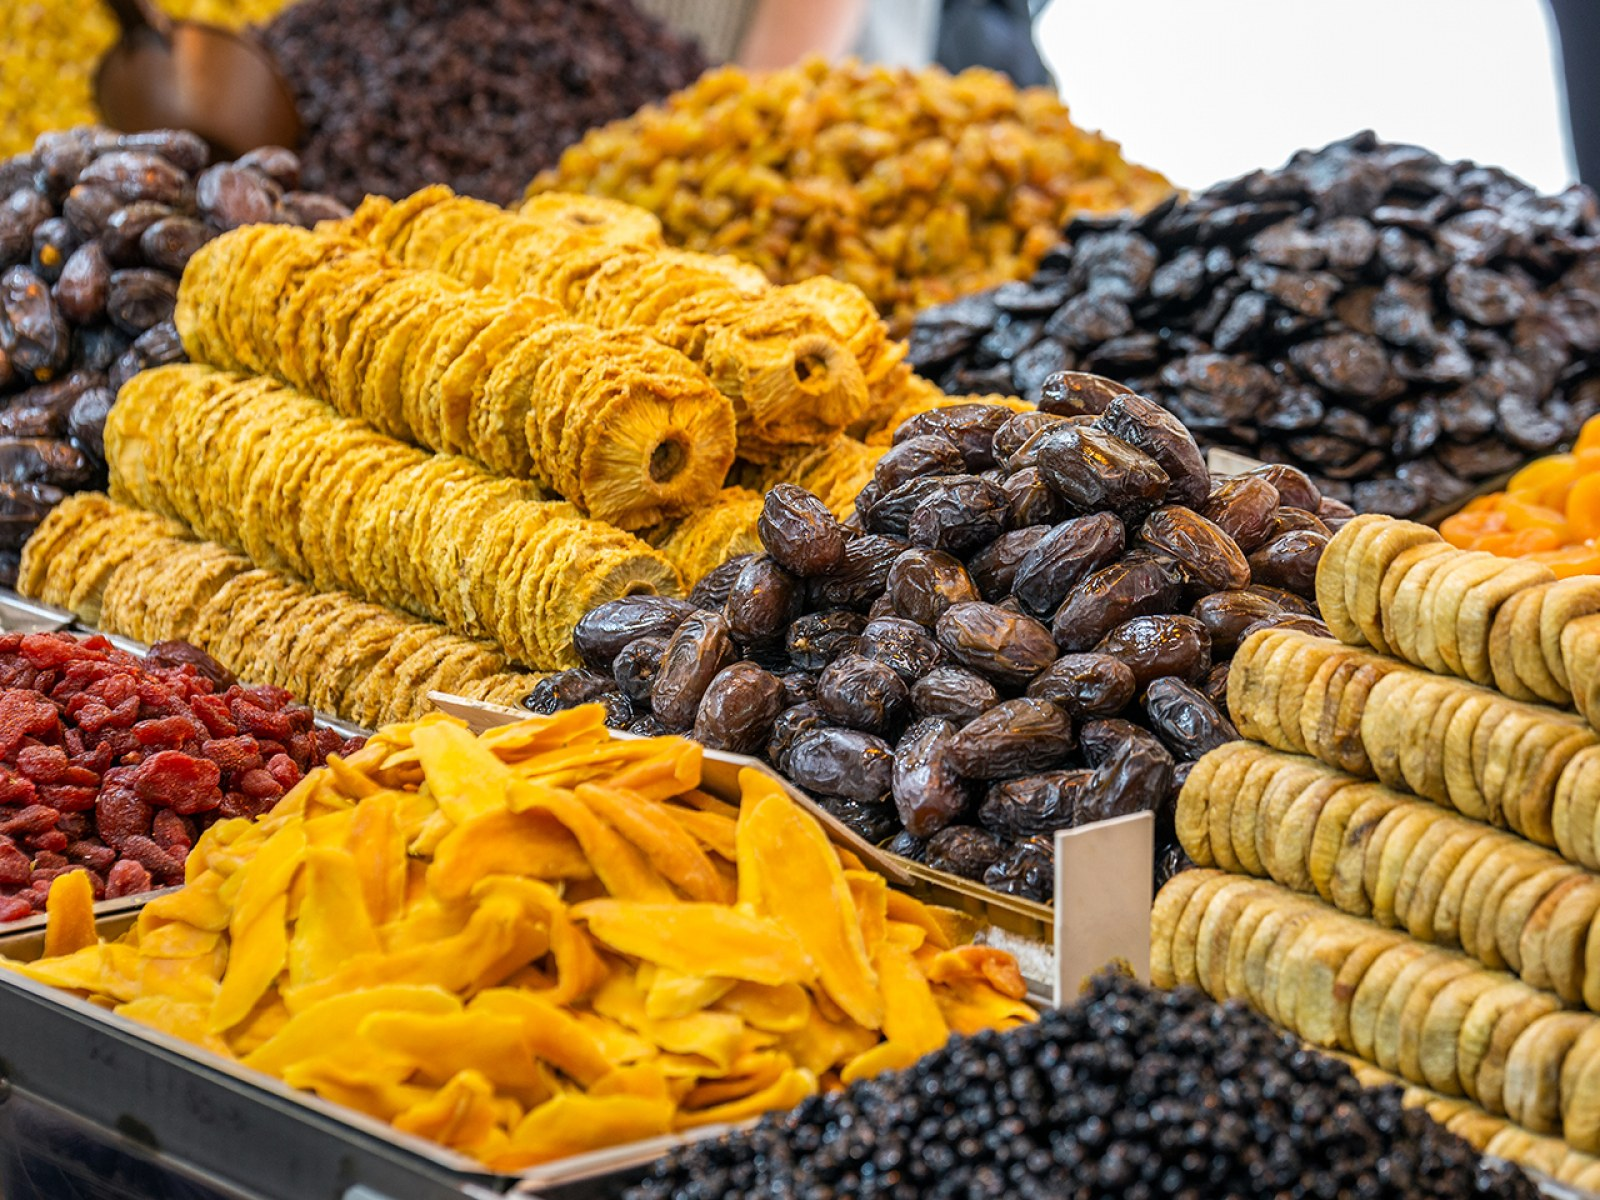 The 10 Best Food Markets in the World